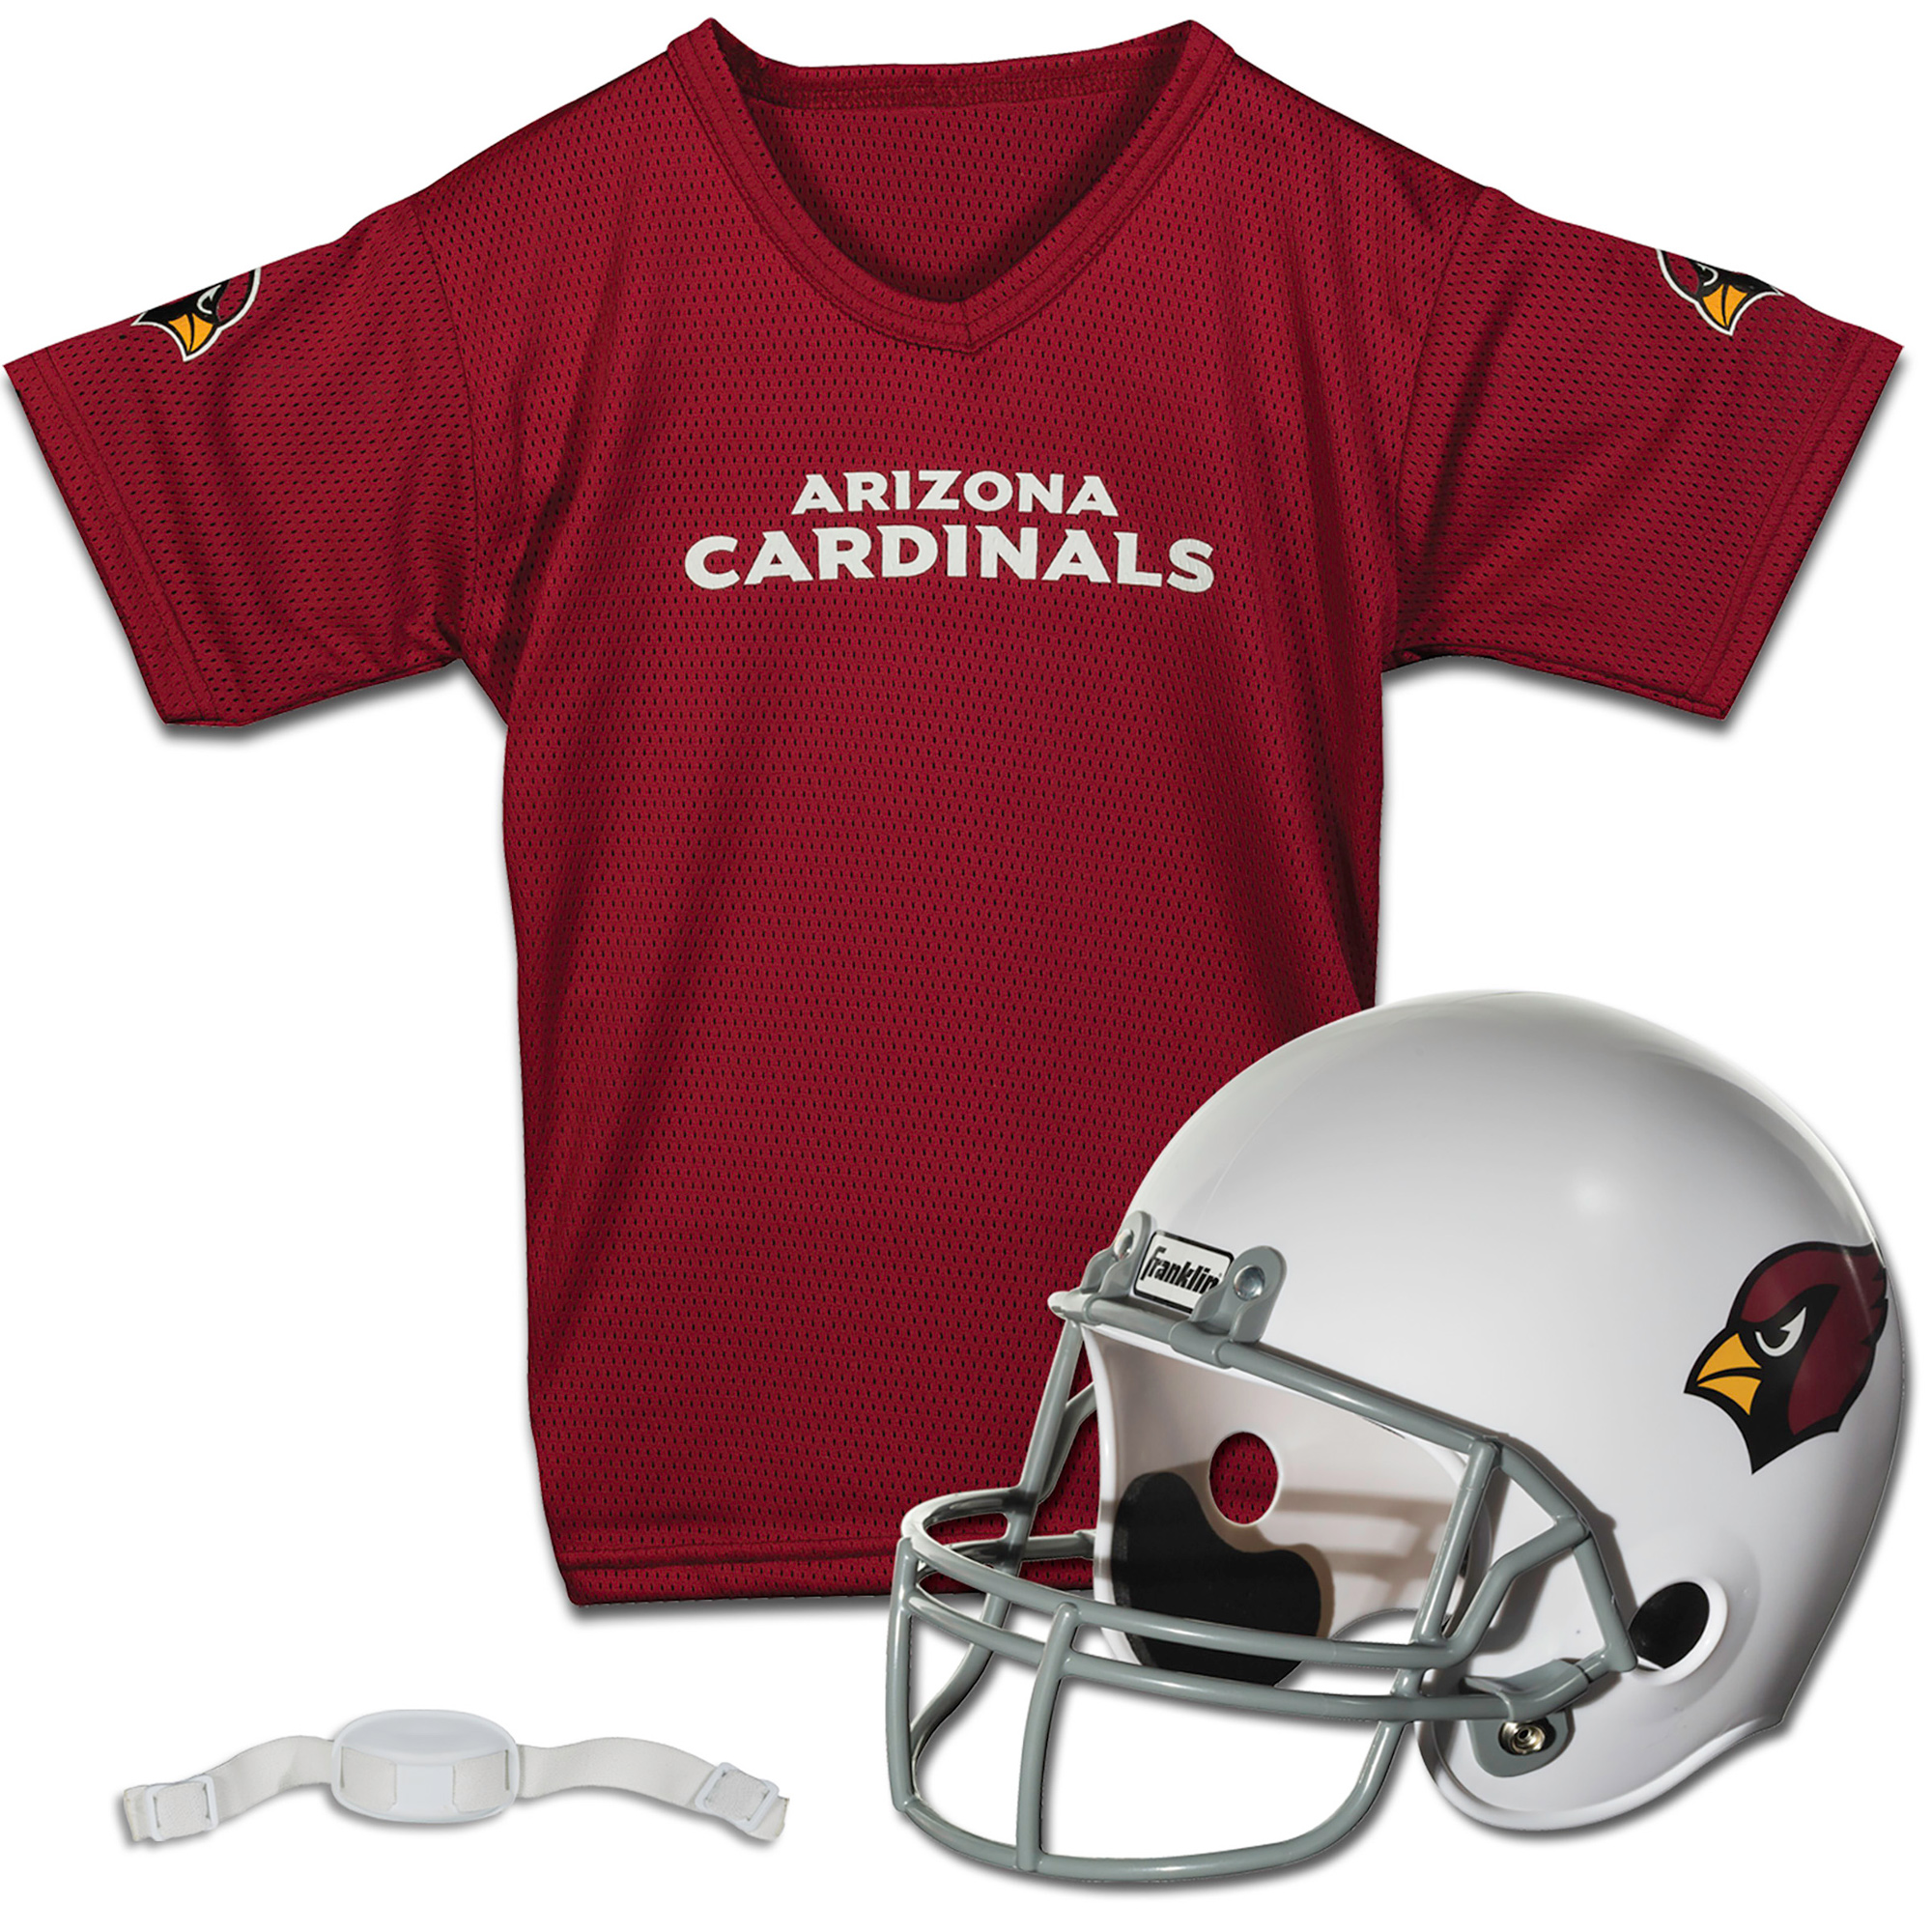 Arizona Cardinals Franklin Sports Youth Helmet and Jersey Set - No Size